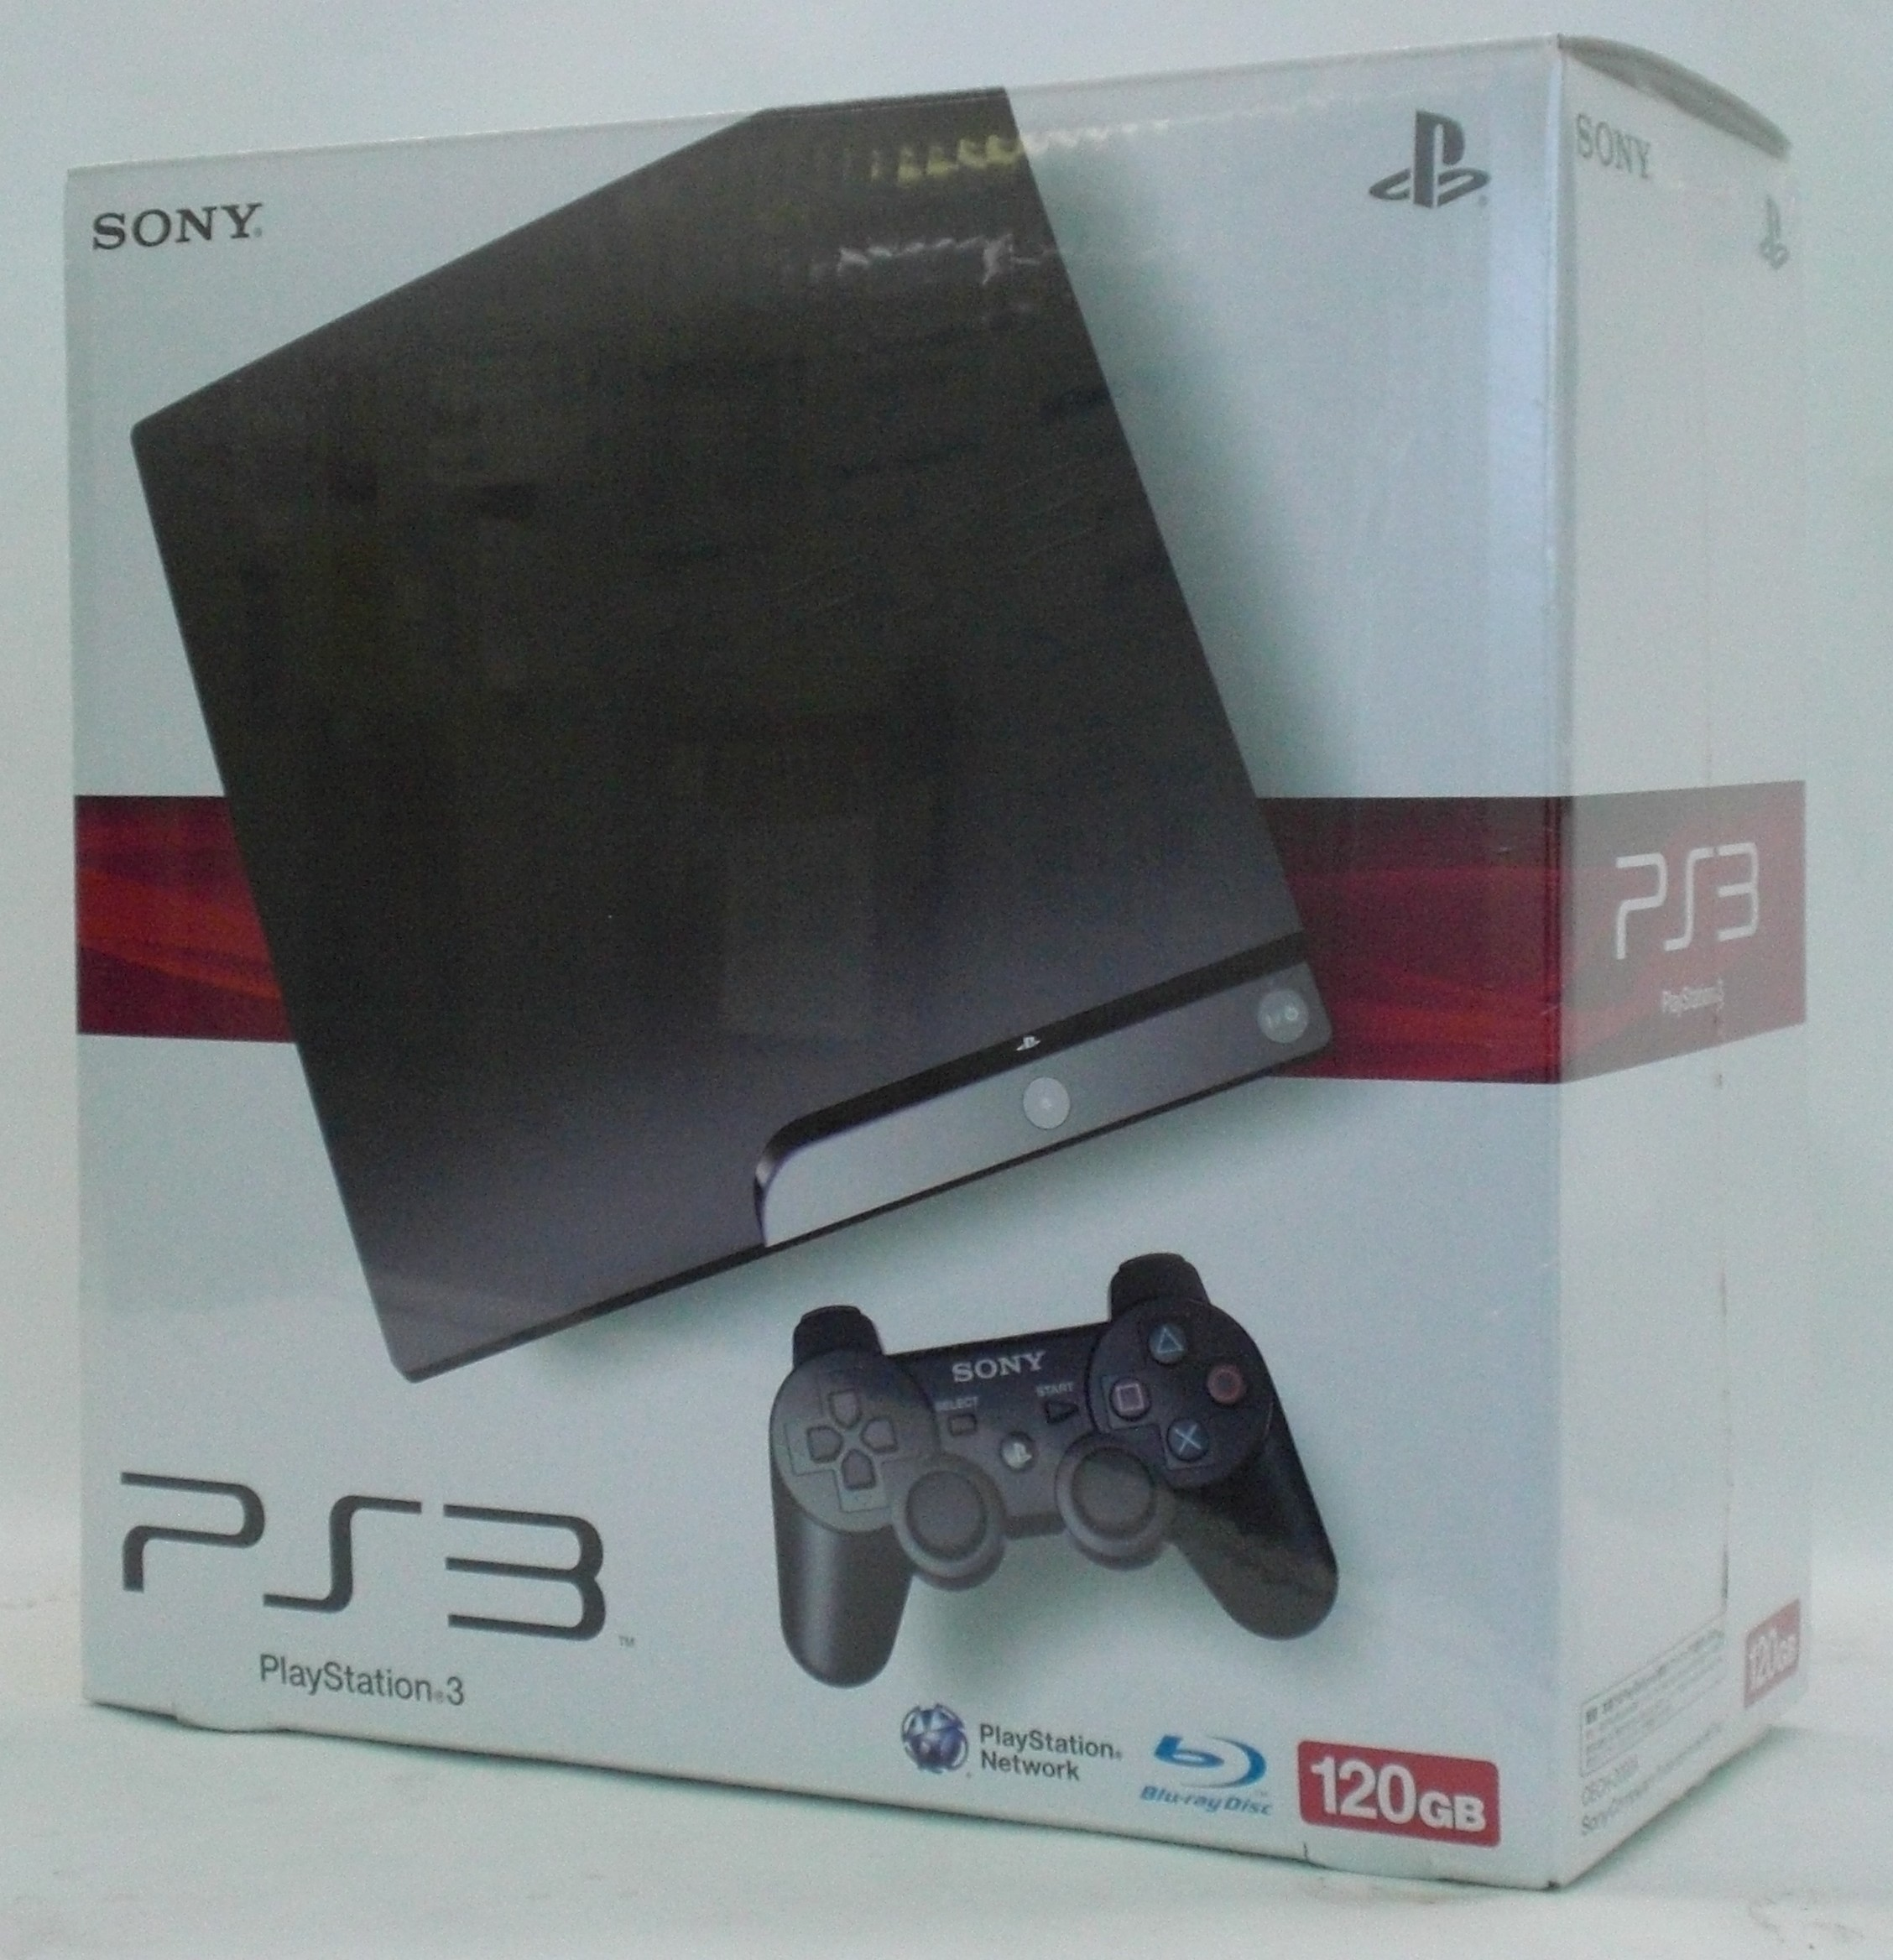 SONY PS3 120GB (CECH2000A)